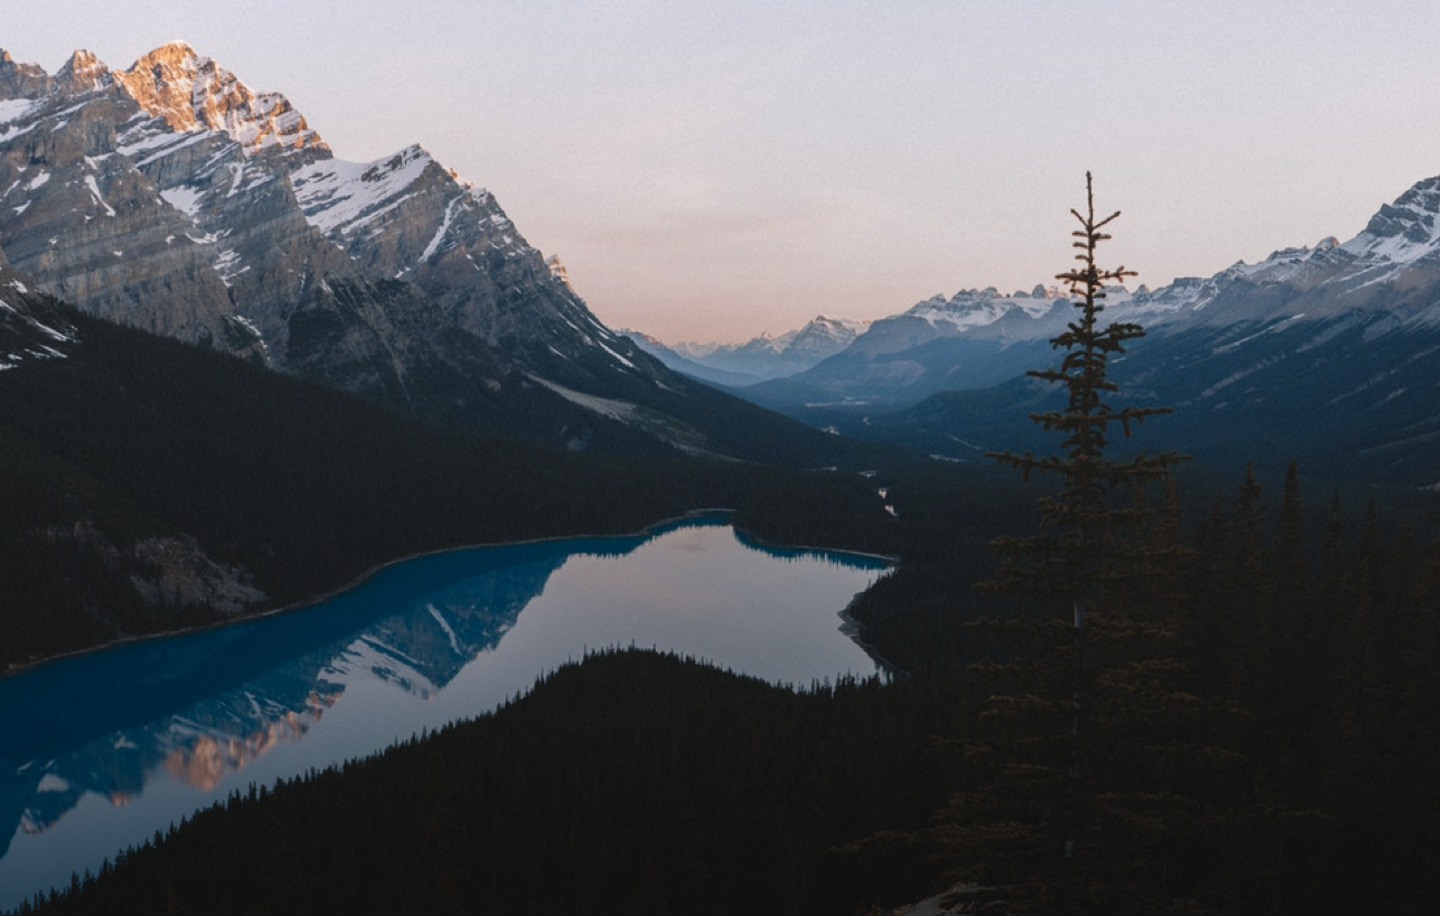 A landscape photo of a lake surrounded by mountains